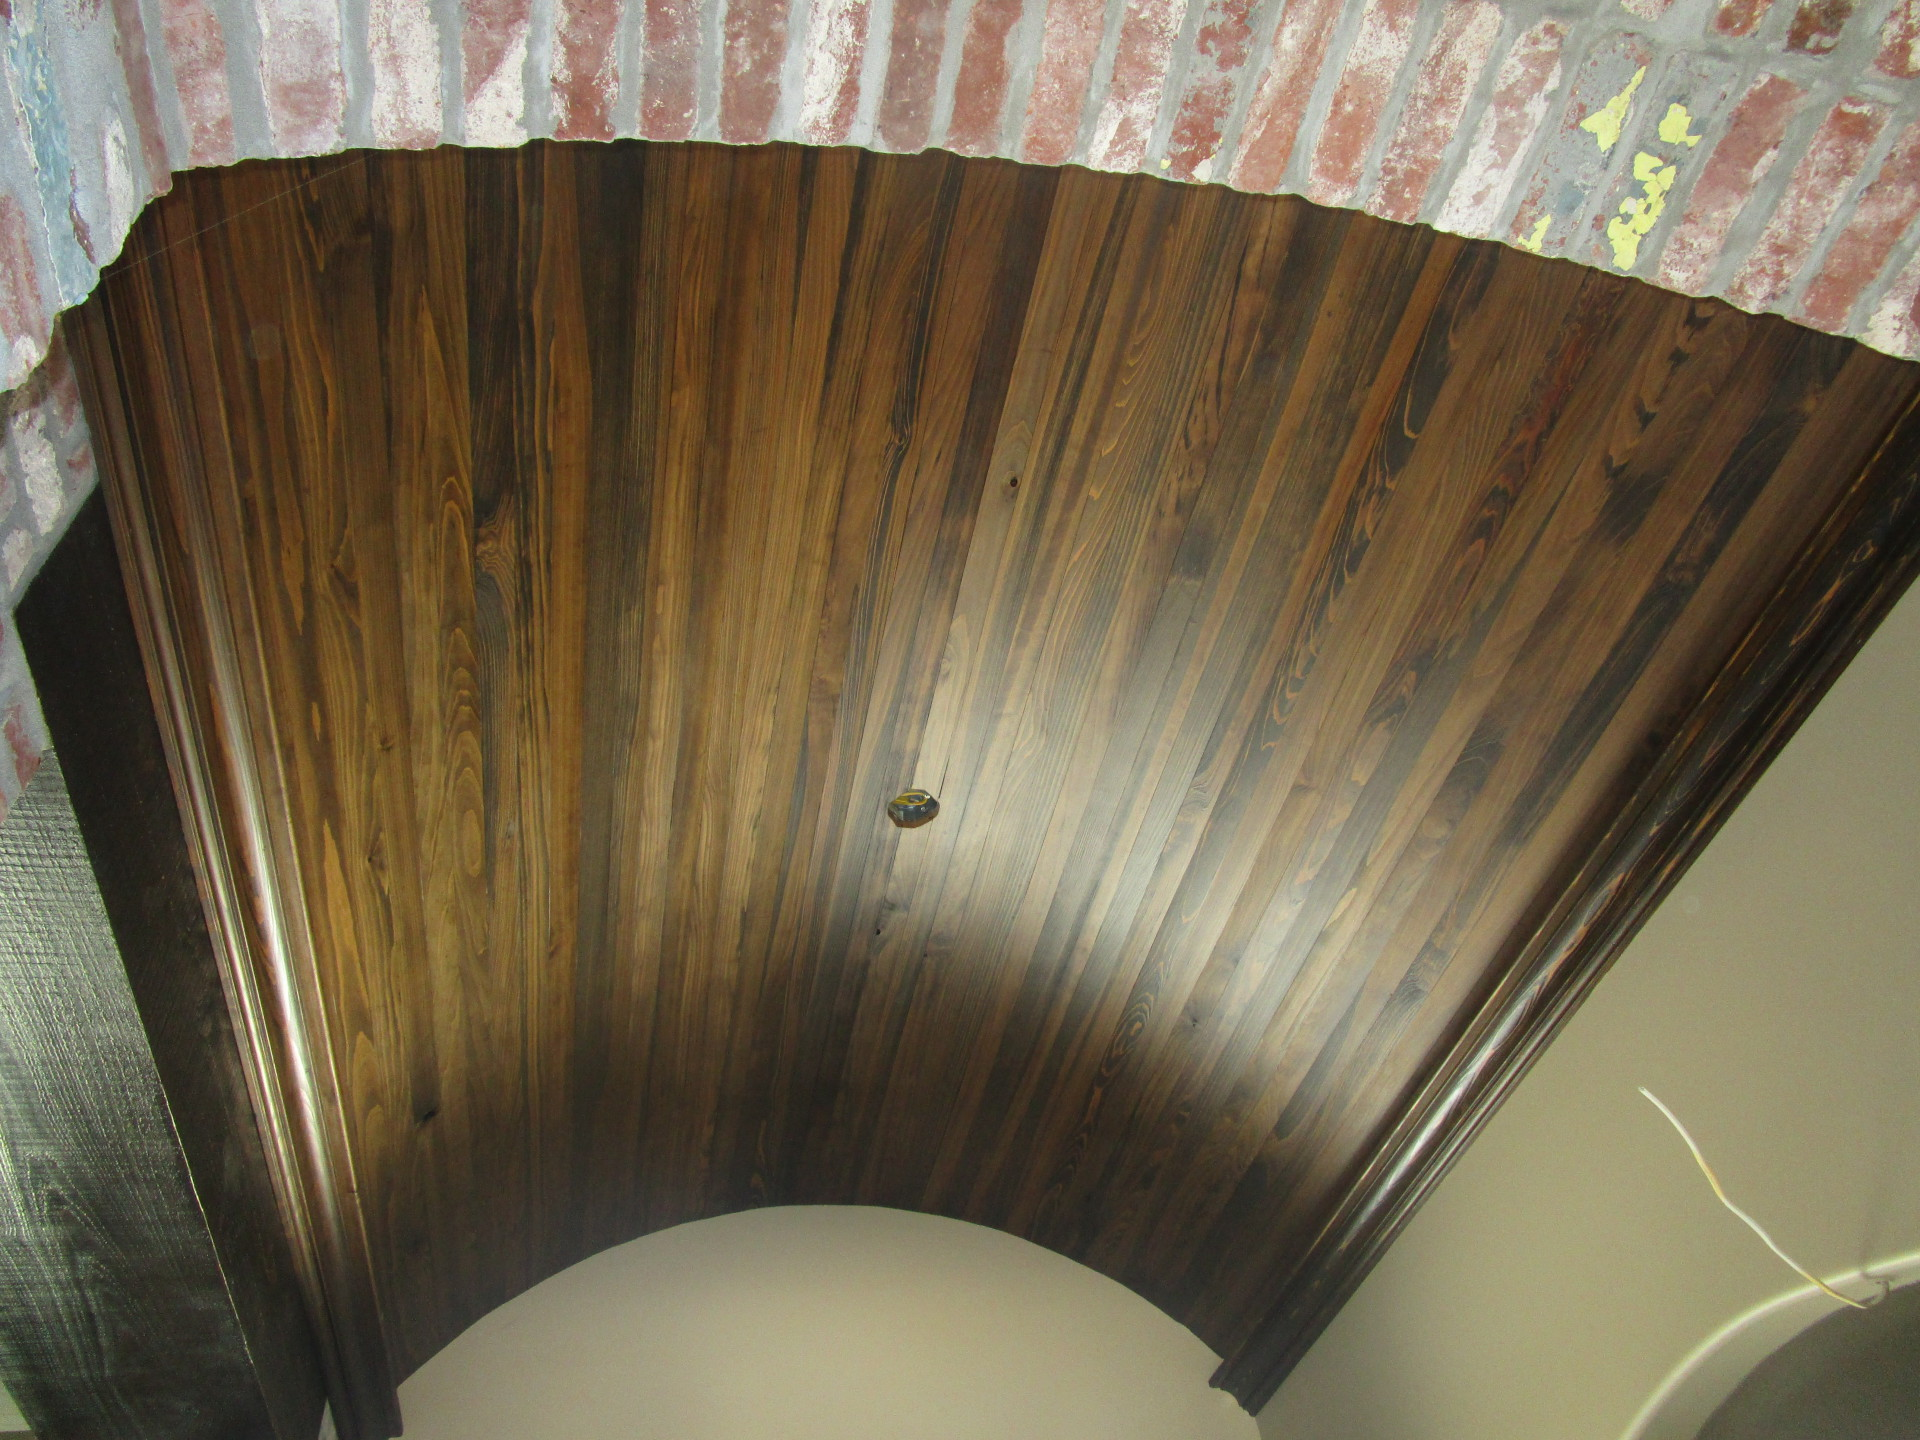 Barreled Ceiling